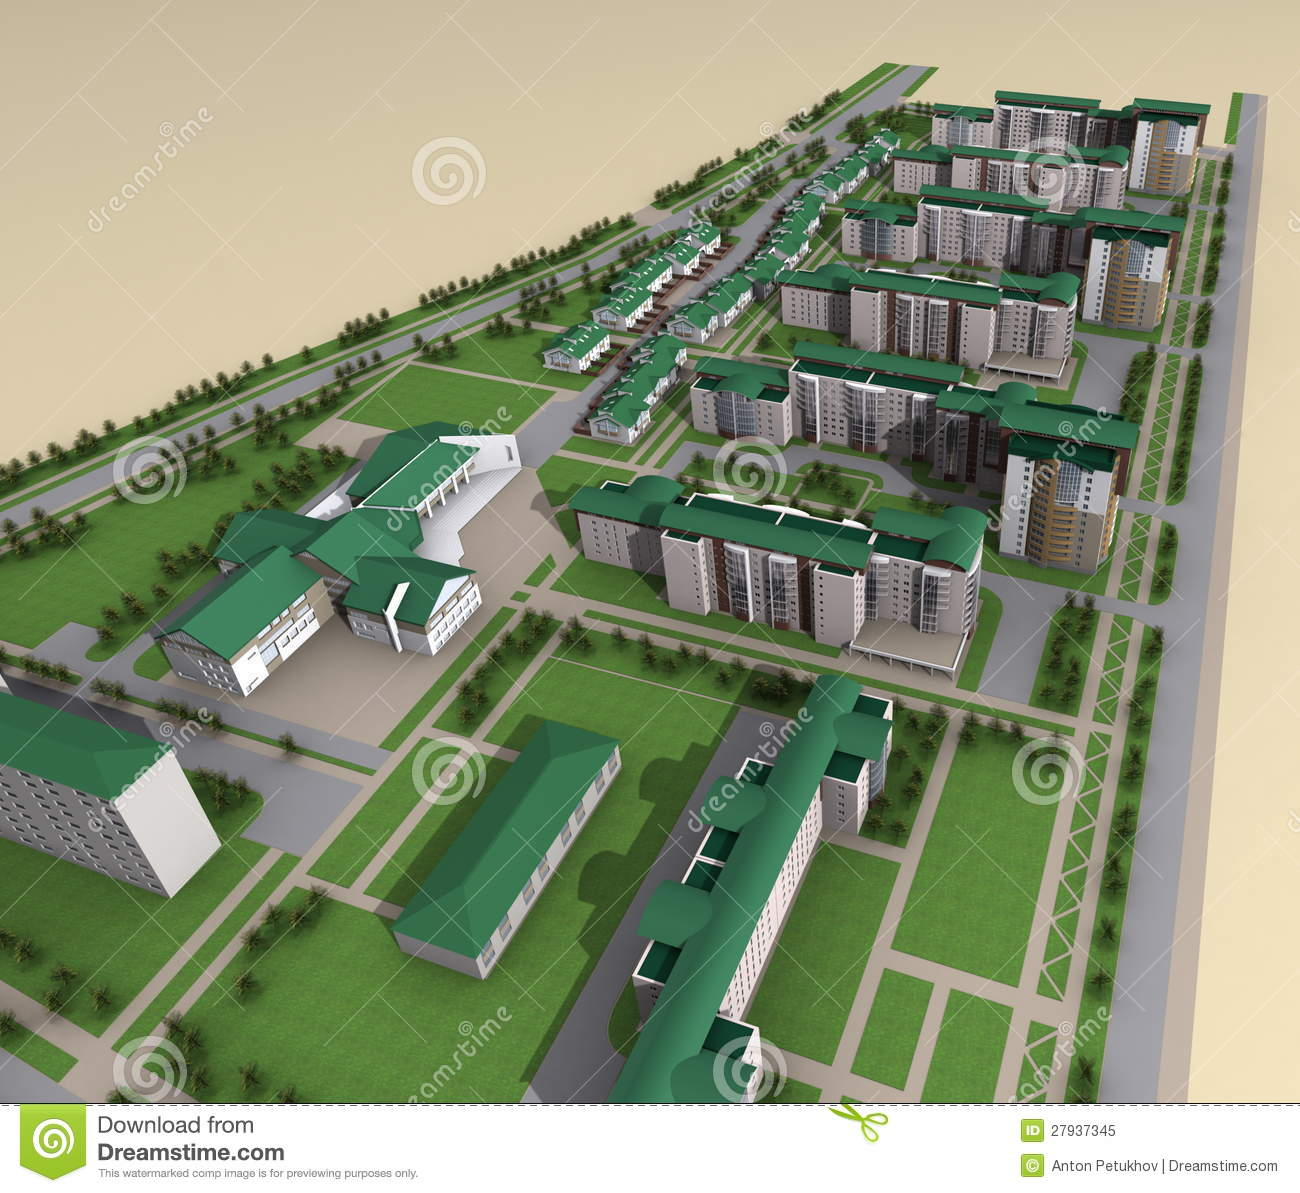 House Layout Plans Model Of Modern City Layout Royalty Free Stock Photo